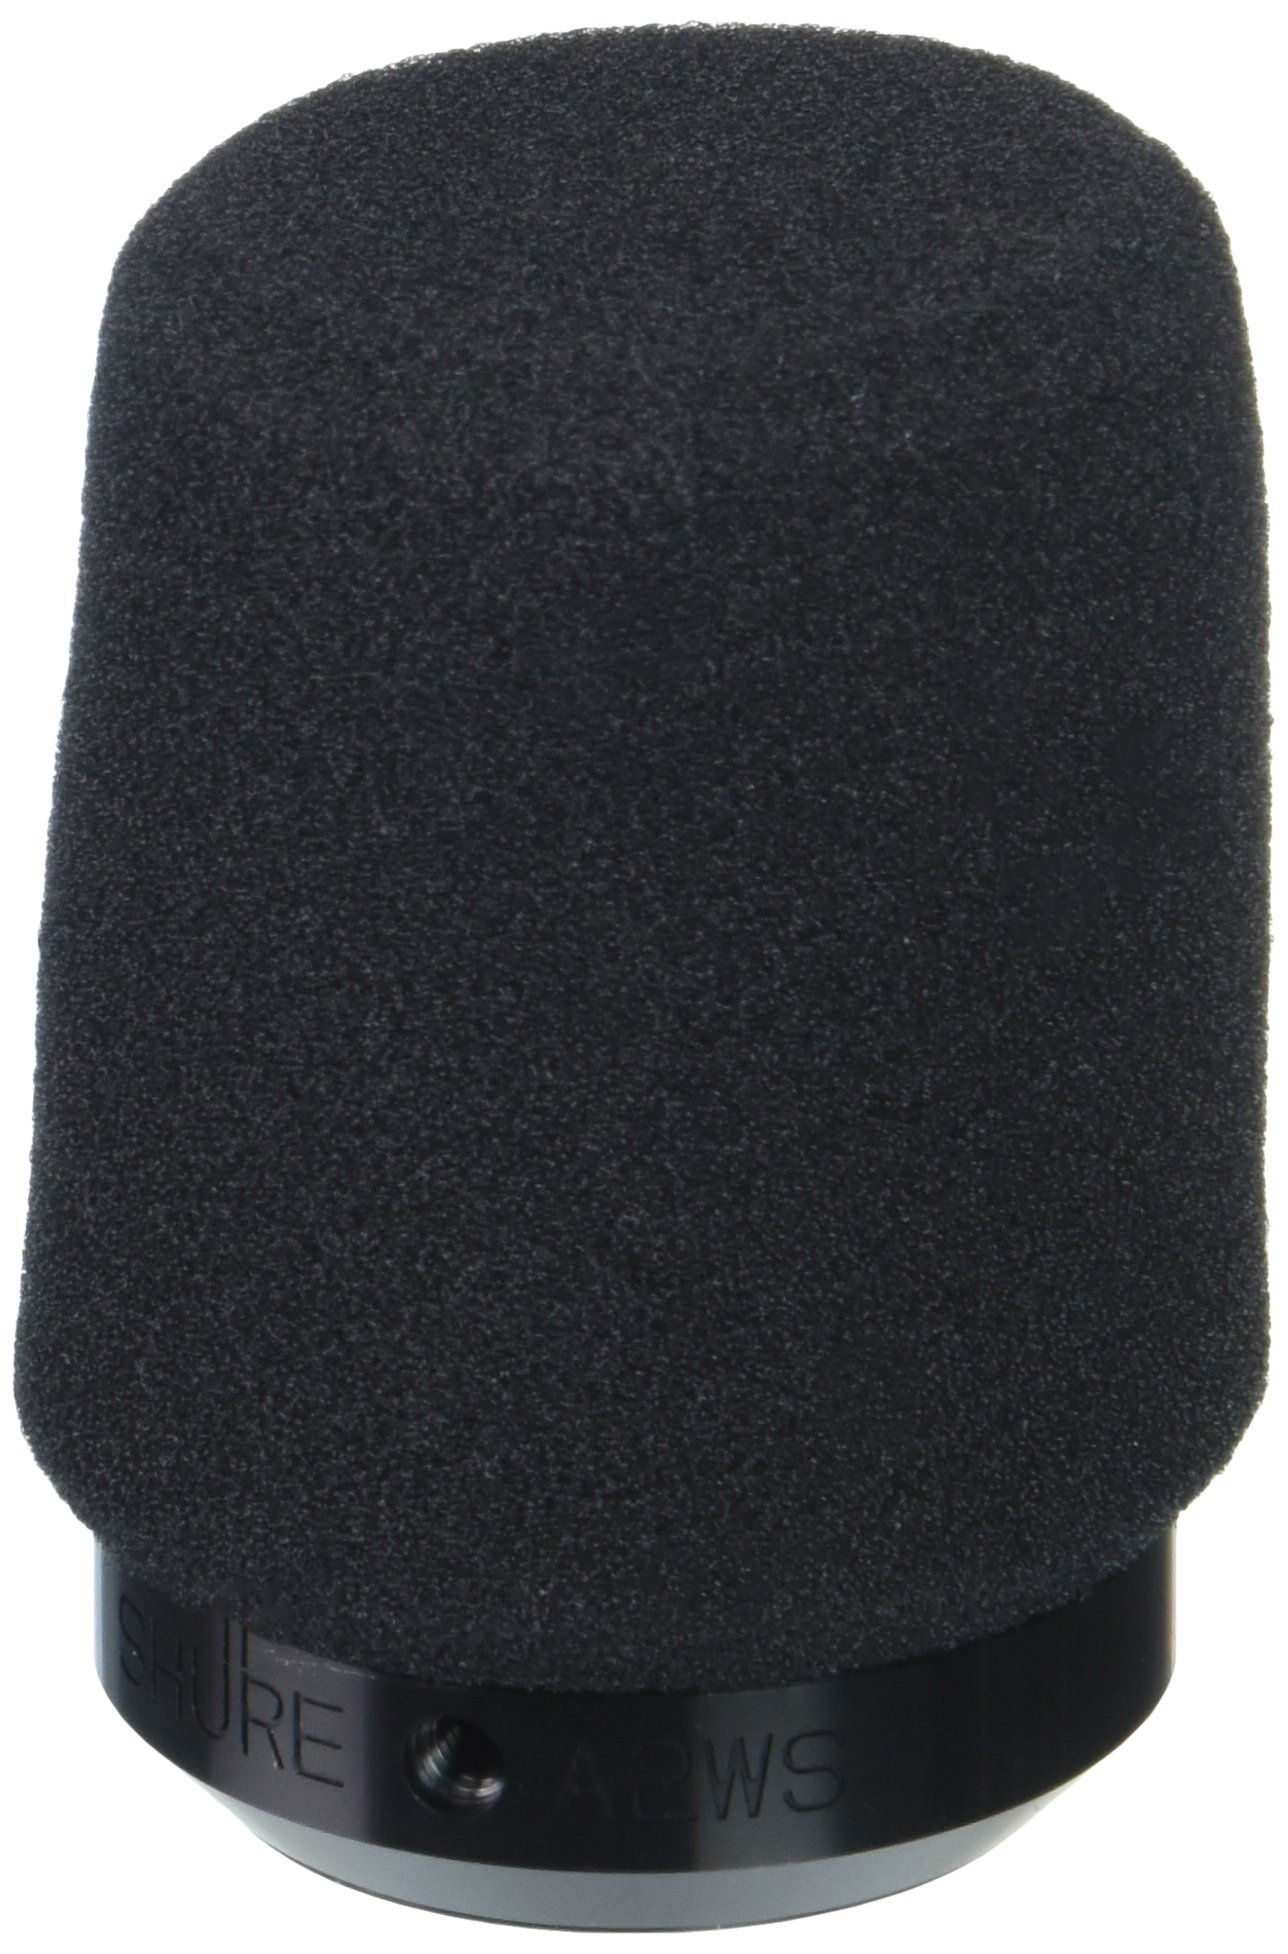 Shure Microphone Mount (A2WS-BLK) by Shure